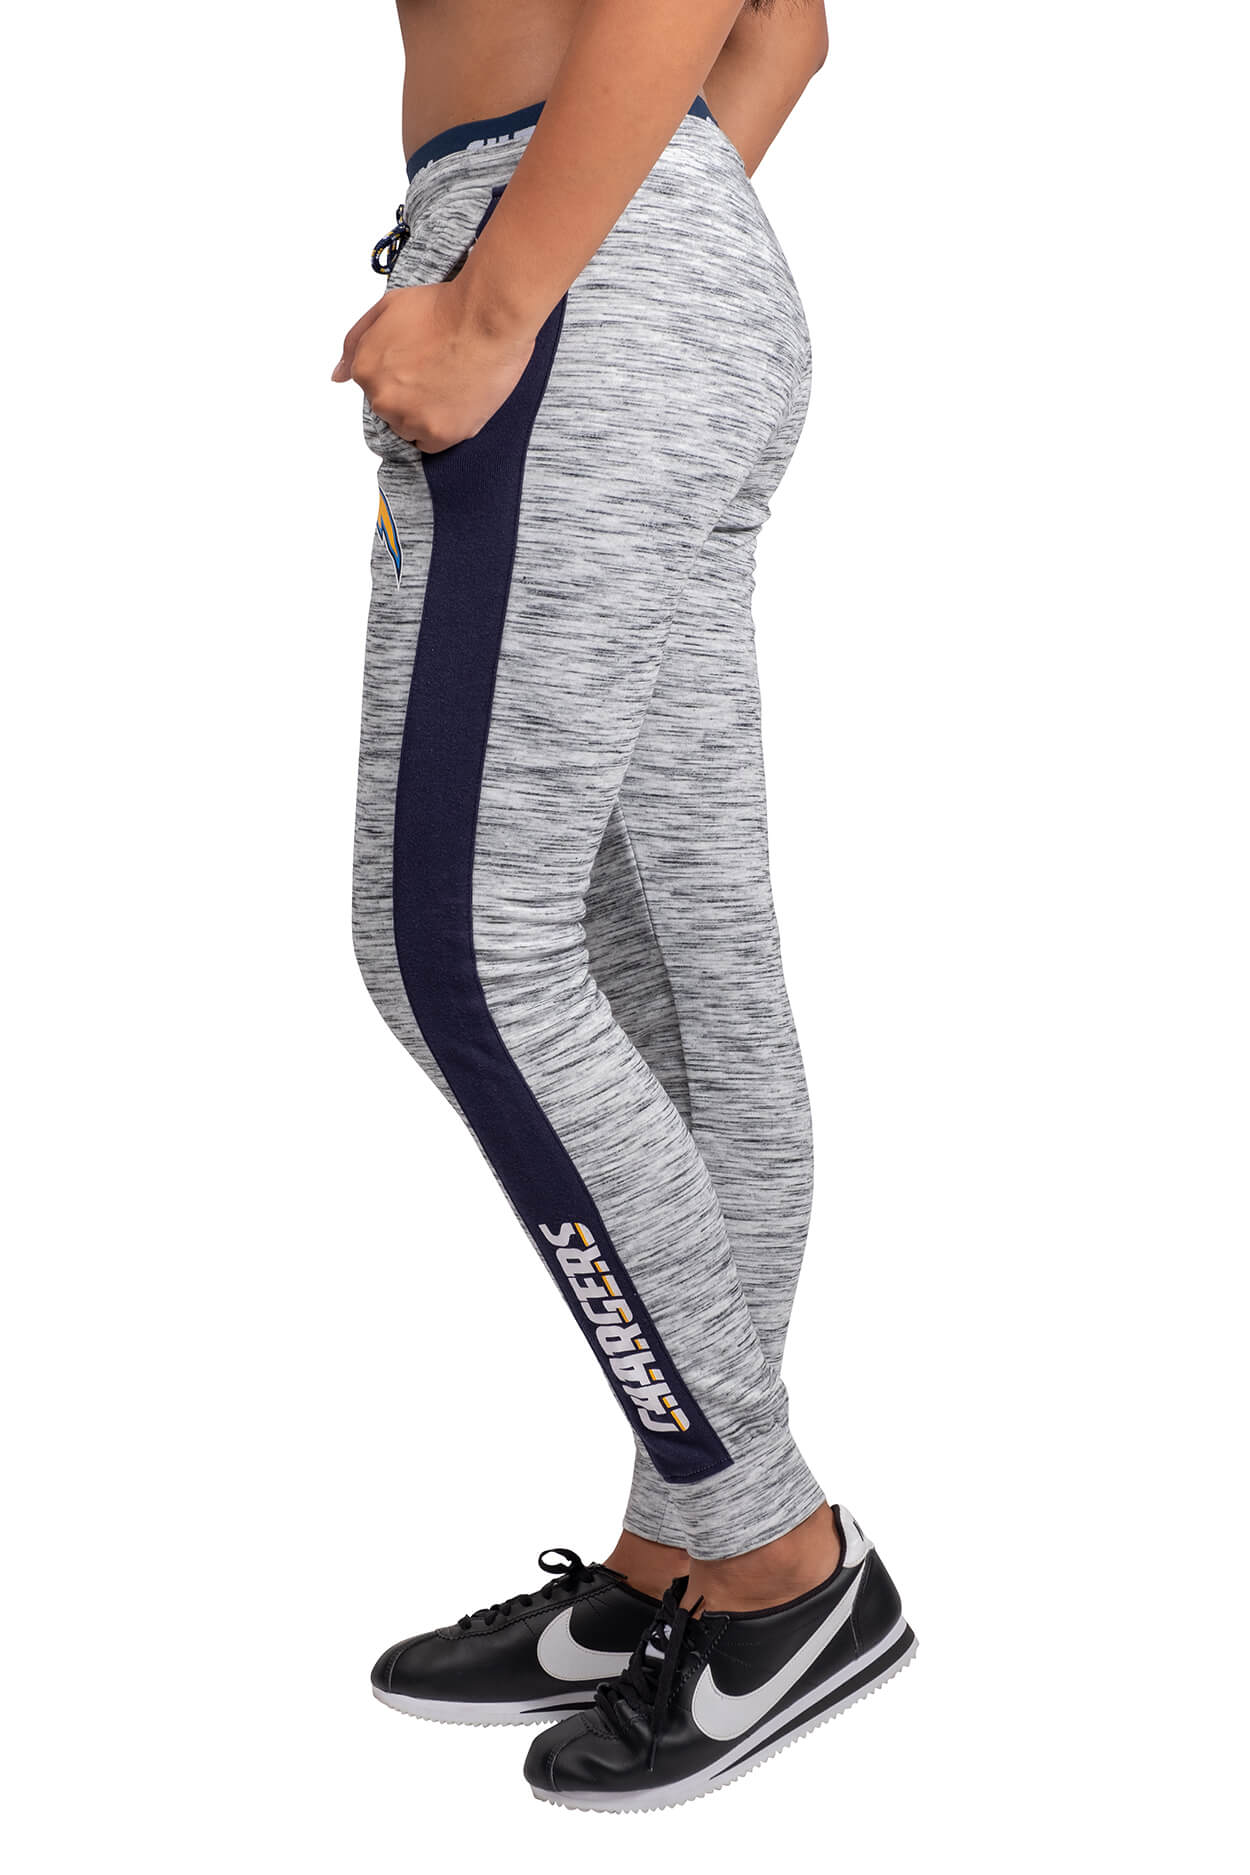 NFL Los Angeles Chargers Women's Basic Jogger|Los Angeles Chargers